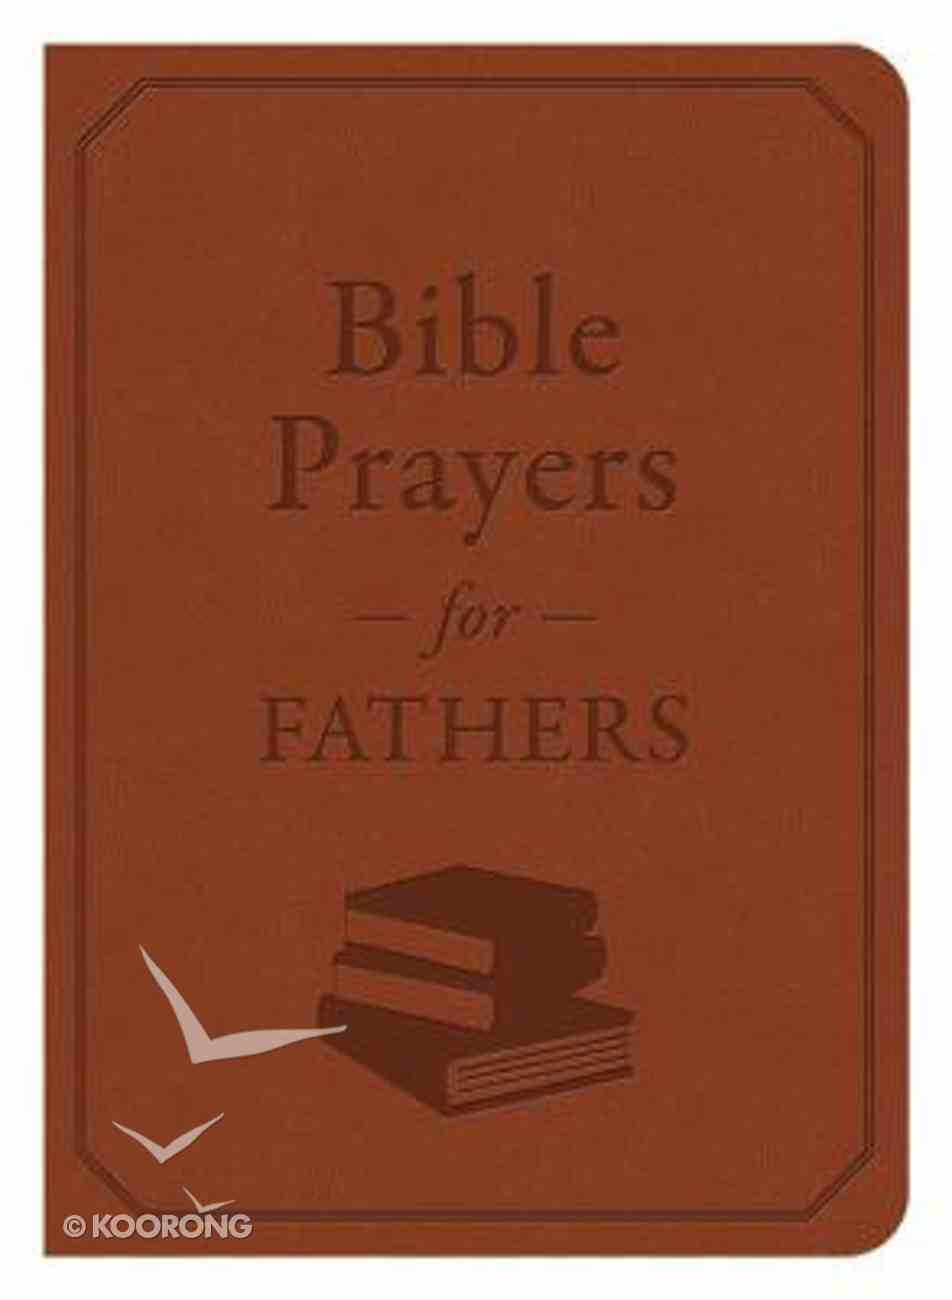 Bible Prayers For Fathers (A Devotional) Imitation Leather